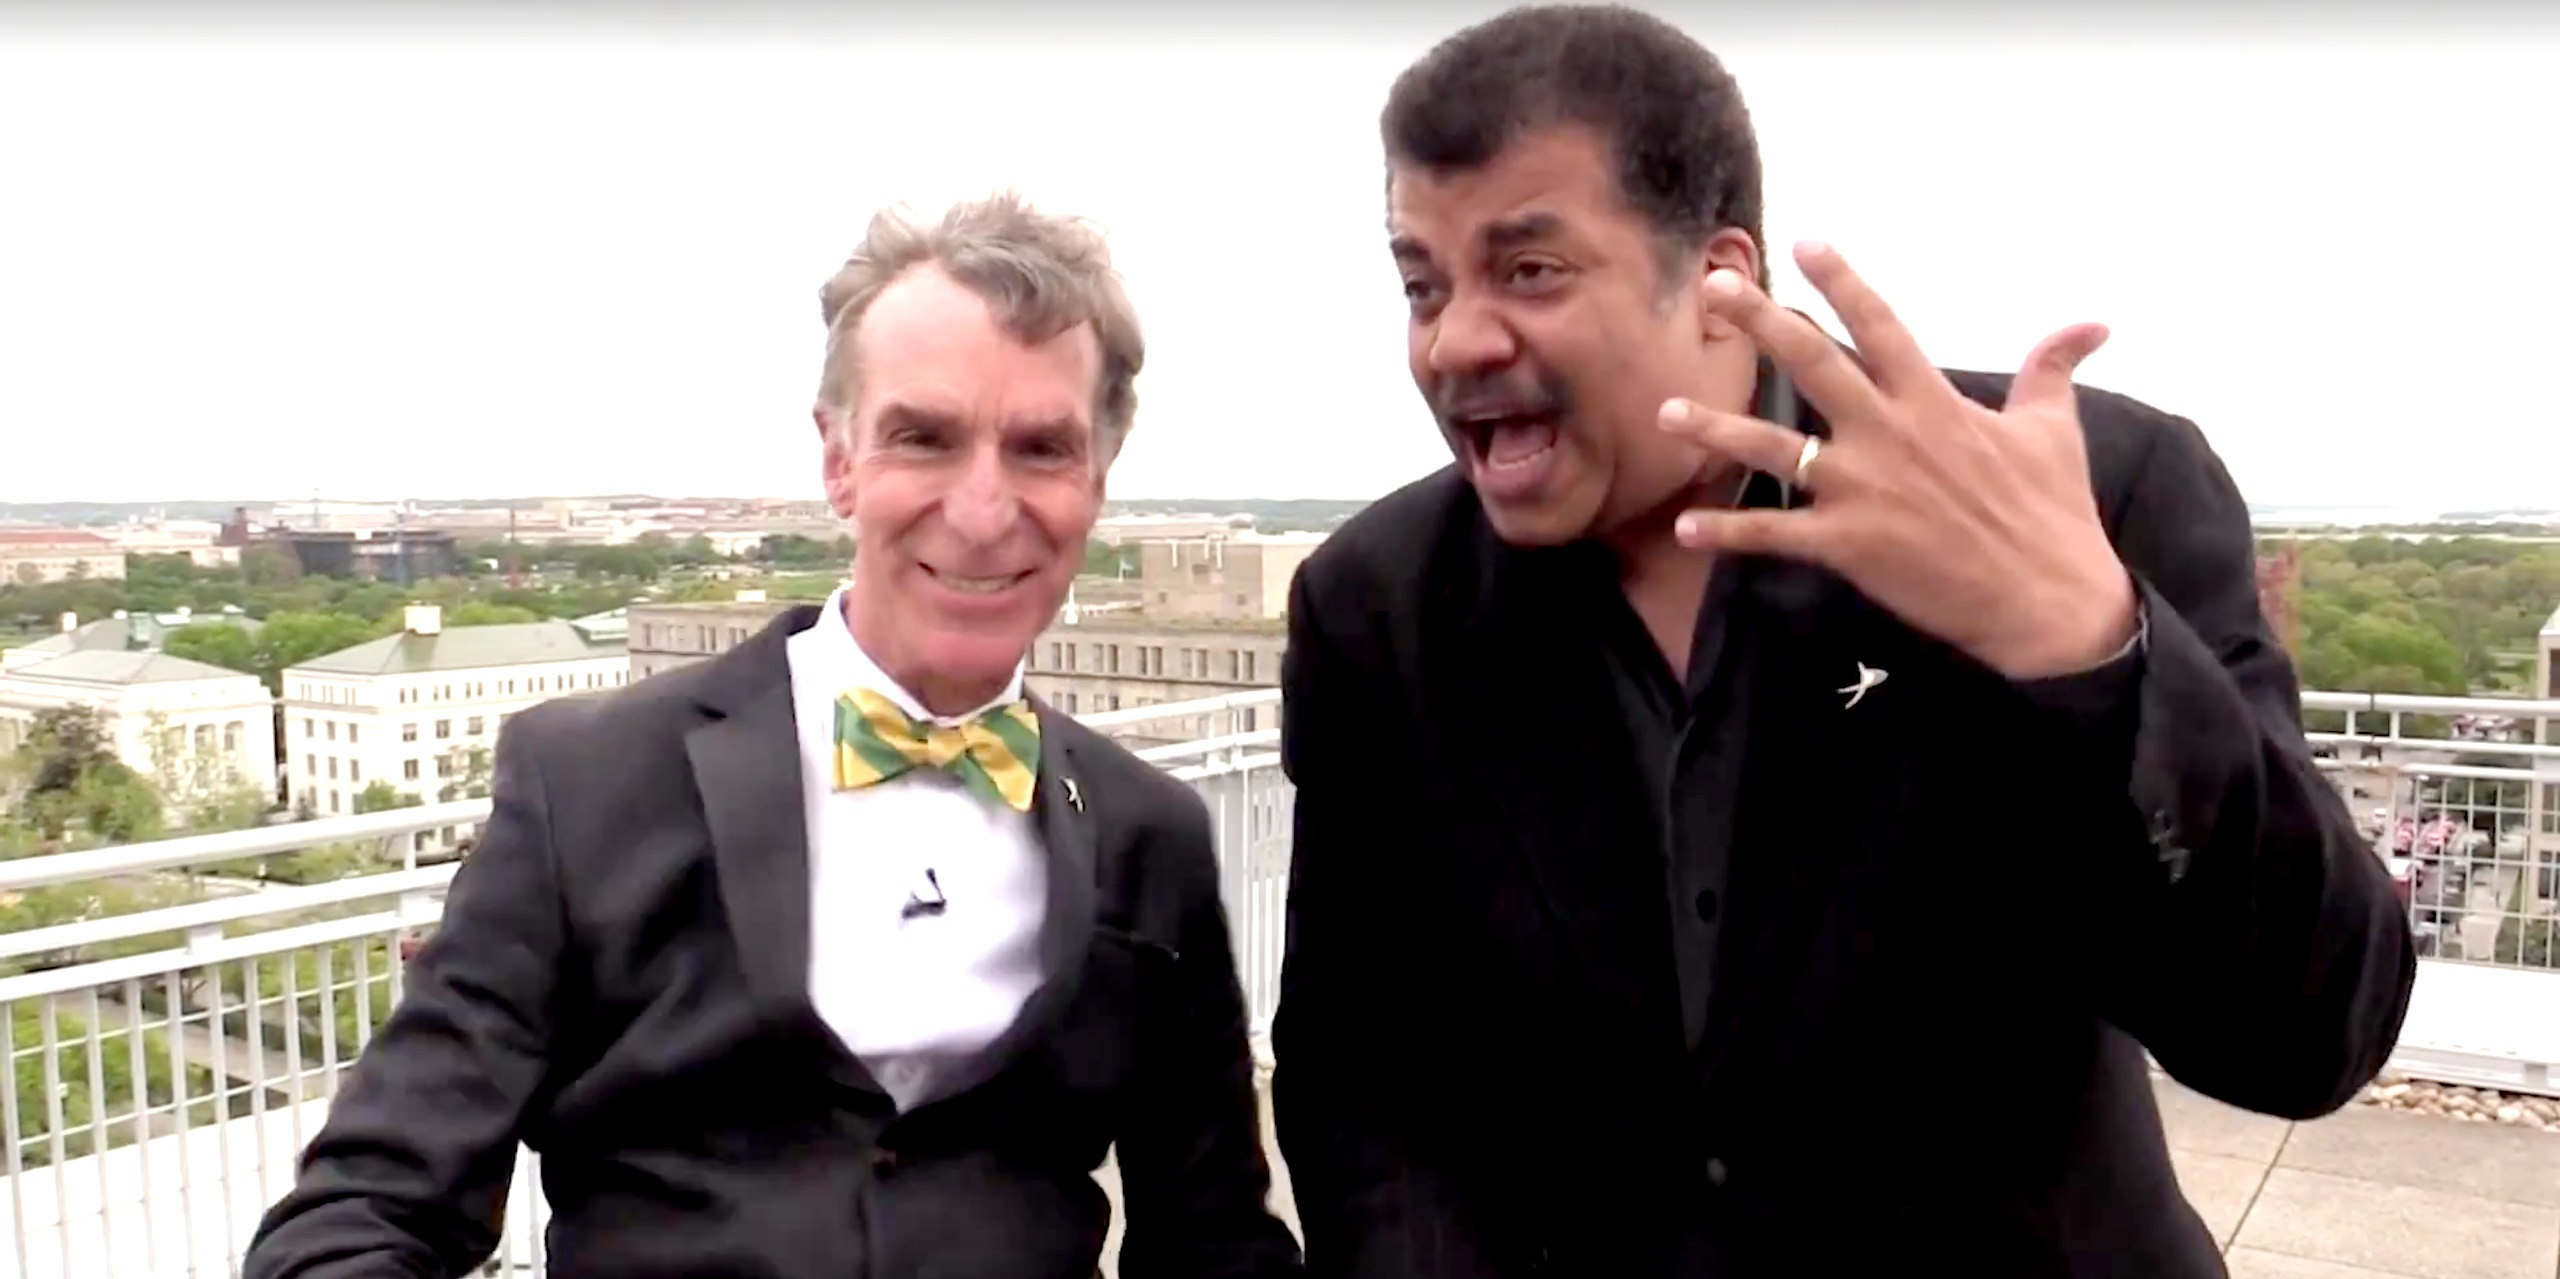 Video of the Day: Neil deGrasse Tyson, Bill Nye  in 'Beyond the Horizon'